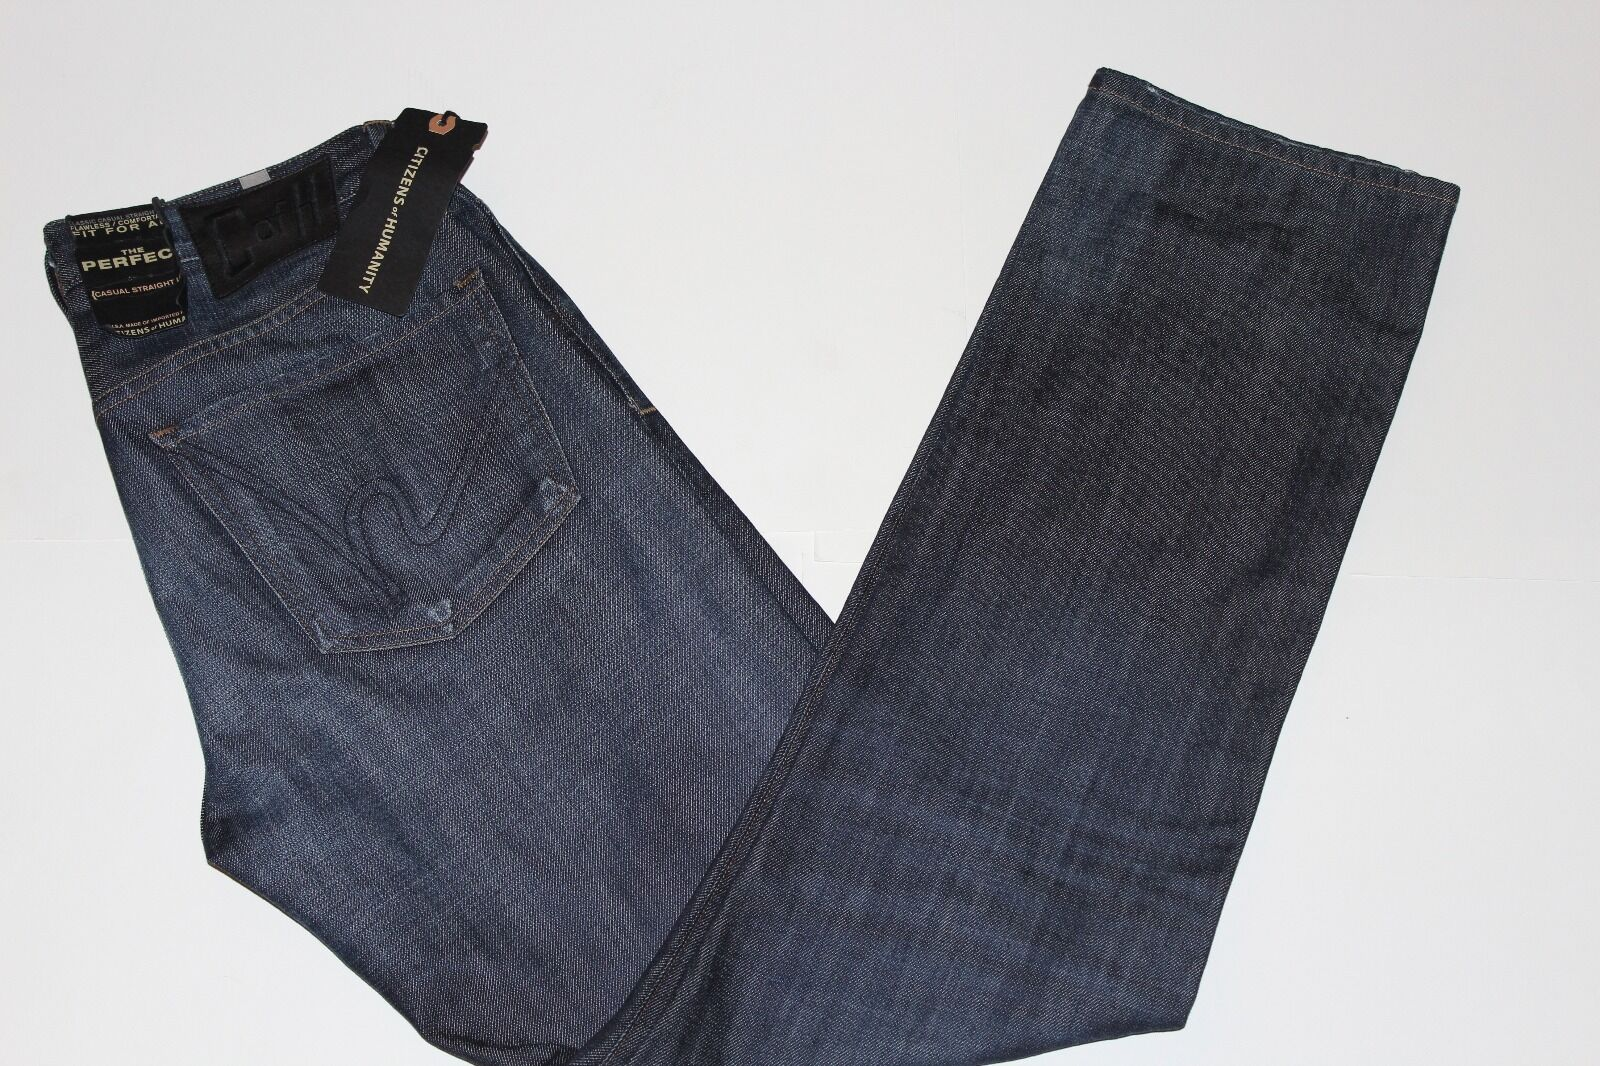 BNWT CITIZENS OF HUMANITY Mens PERFECT Casual Straight Leg Jeans Size 31x33